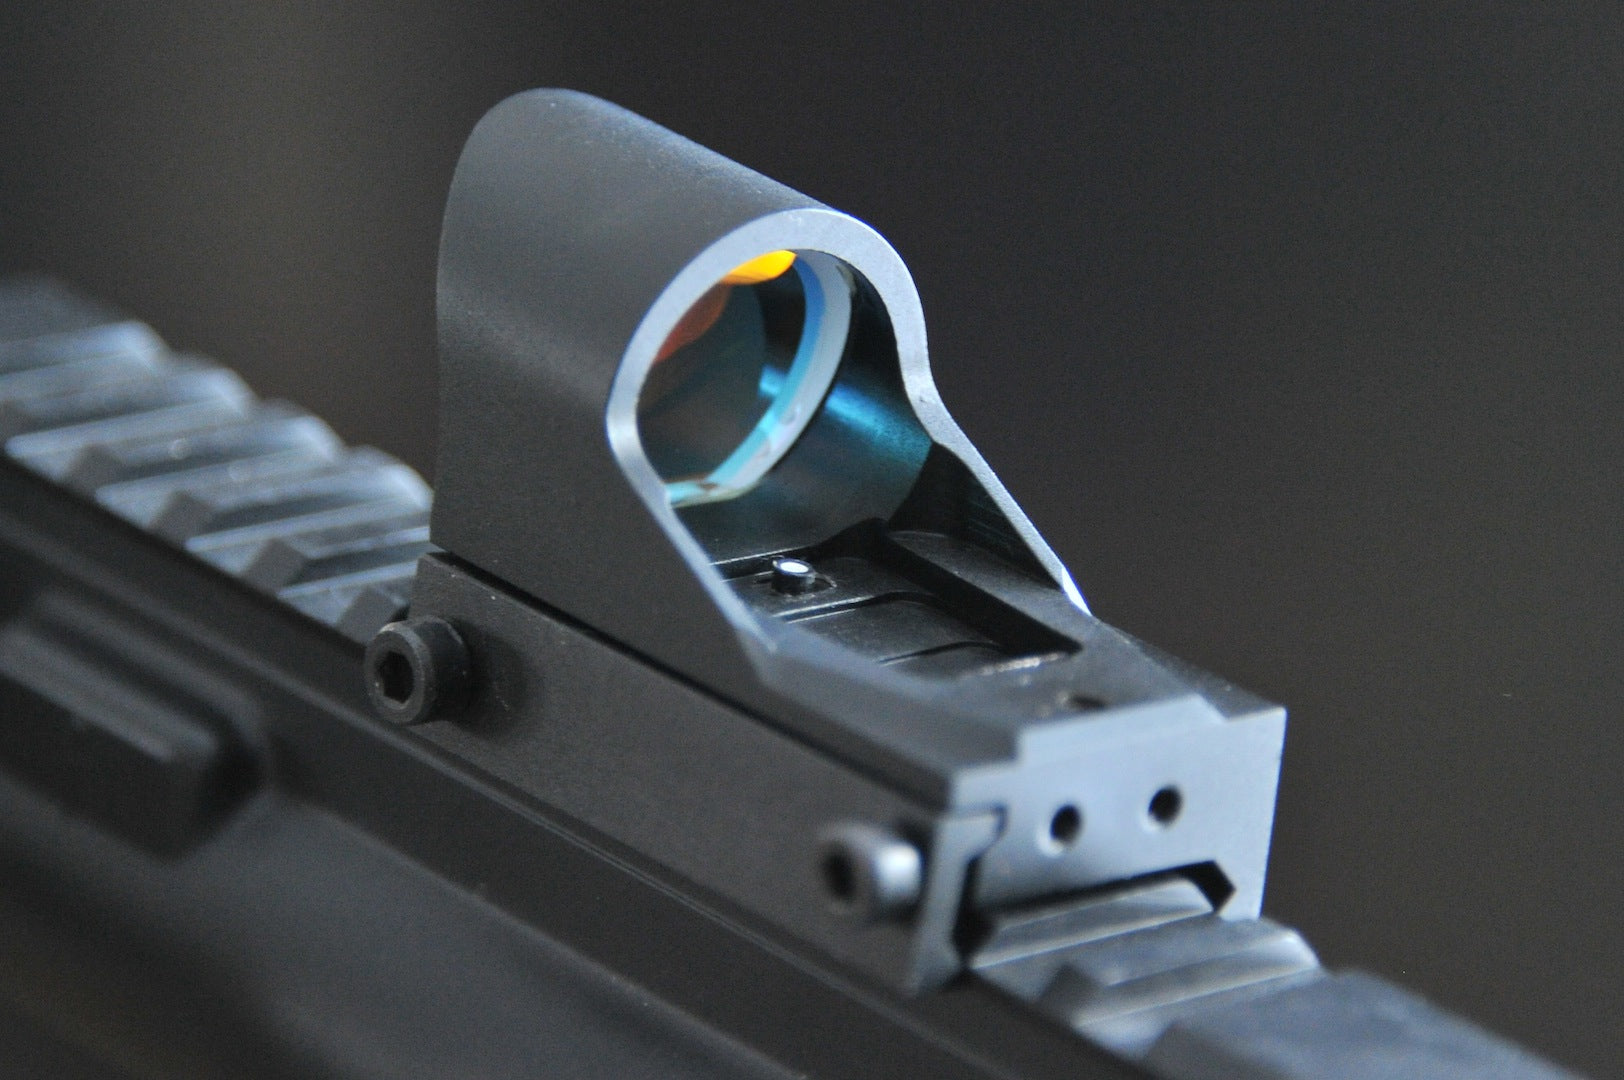 Red Dot Auto Light Sensing Sight built in sun shade, good for pistols.